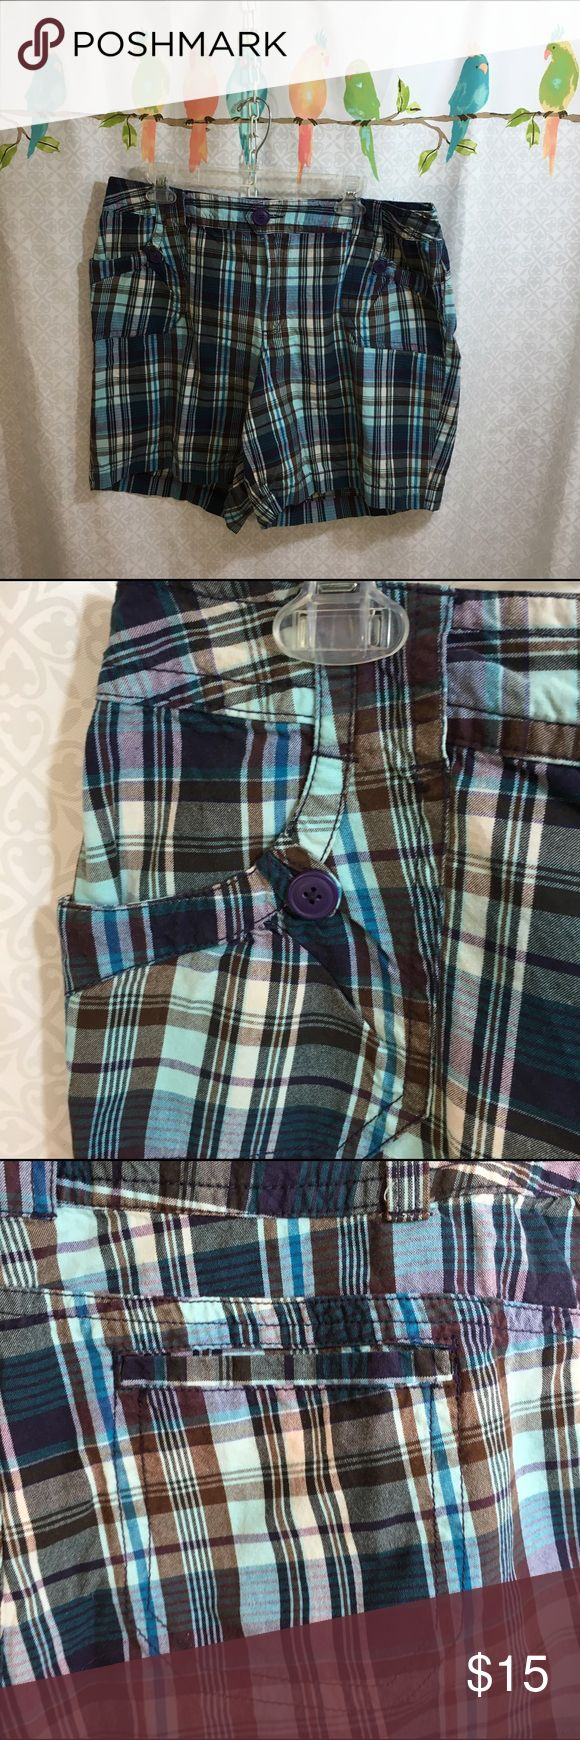 JMS Just My Size Blue/Brown/White Shorts - 20W These beautiful plaid shorts have a 40 inch waist and are 48 inches in the hips.  Always happy to bundle.  ☺️. Wearing preowned clothing is an ethical way to have a fashionable wardrobe. Feel free to ask any questions and thank you for visiting my closet. Just My Size Shorts